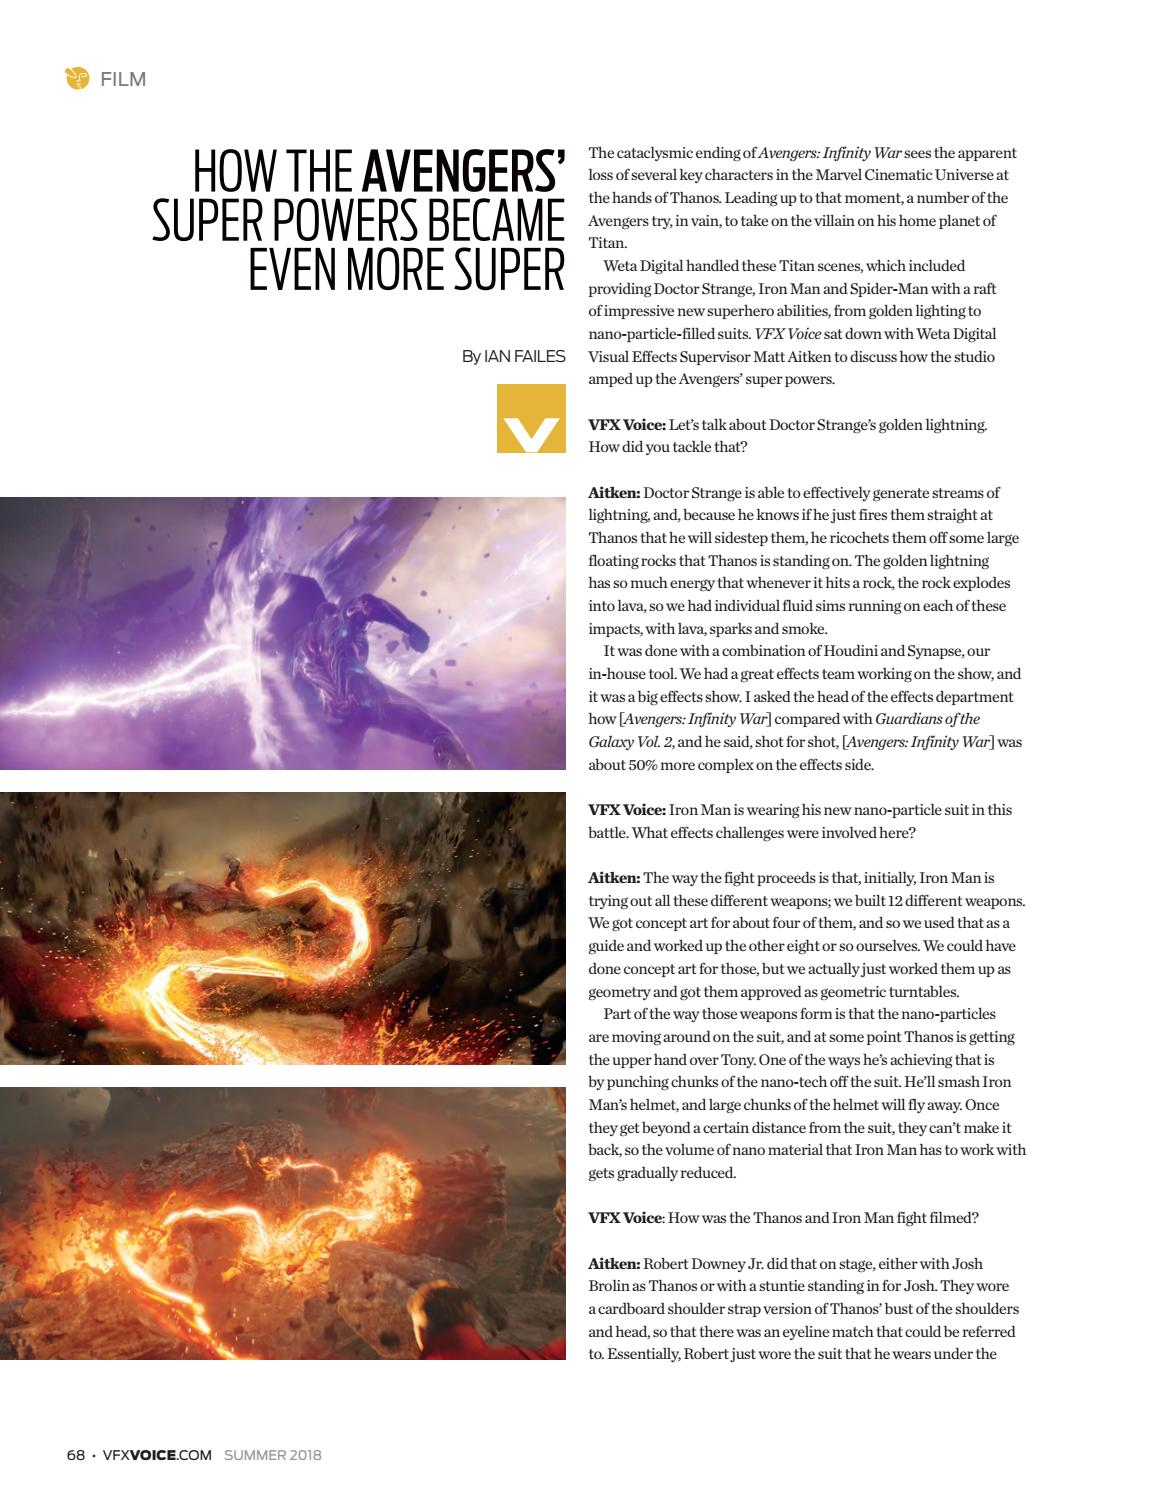 VFX Voice - Summer 2018 Issue by Visual Effects Society - issuu